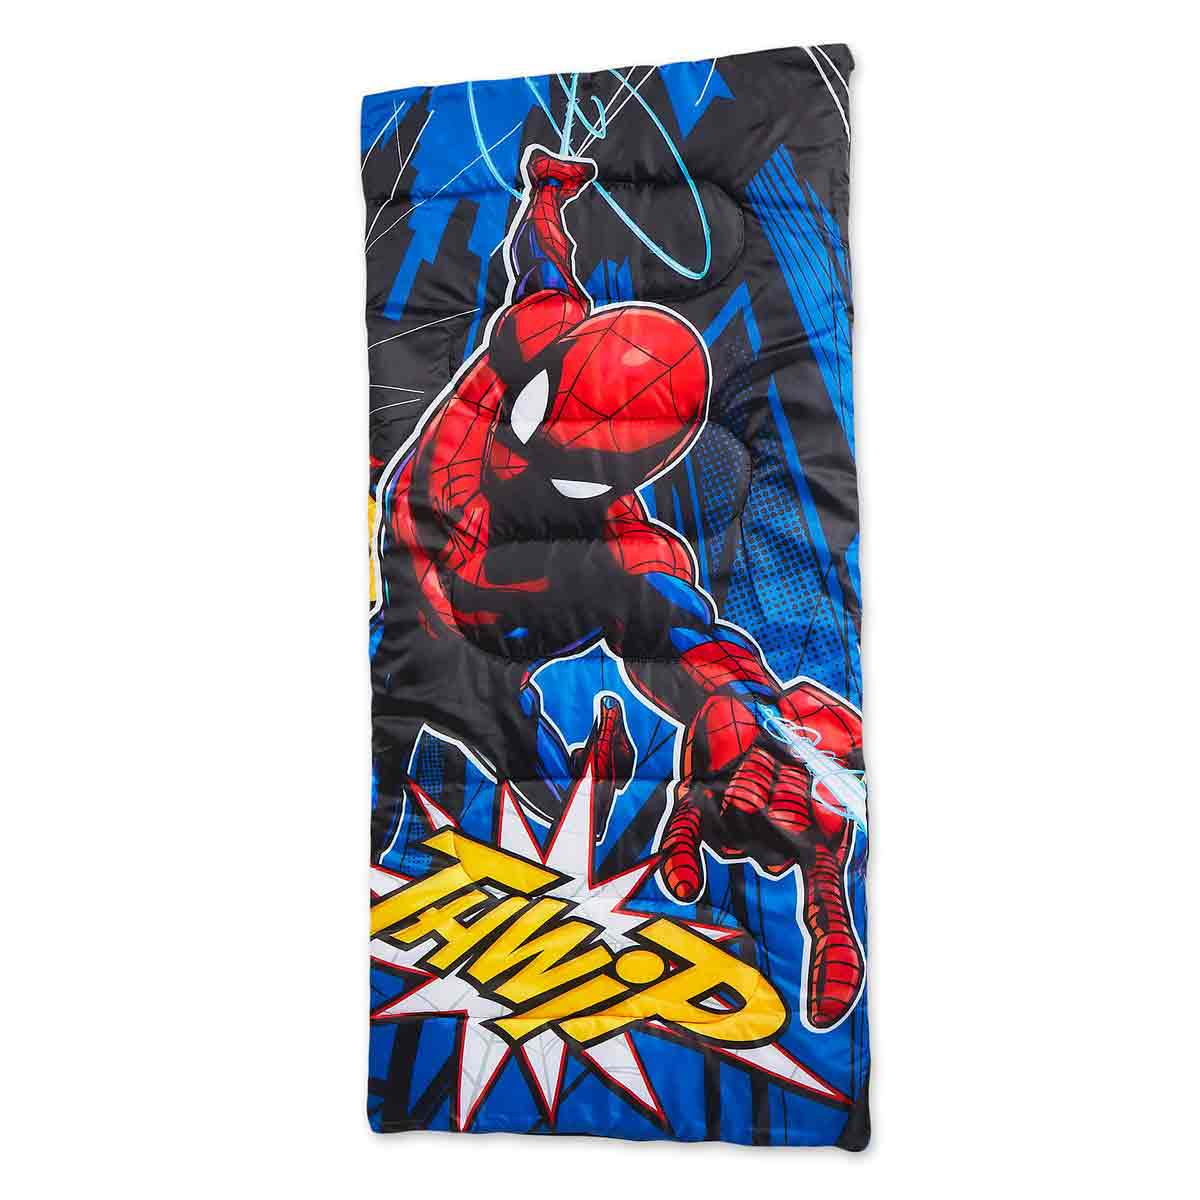 Spider-Man Sleeping Bag for Kids